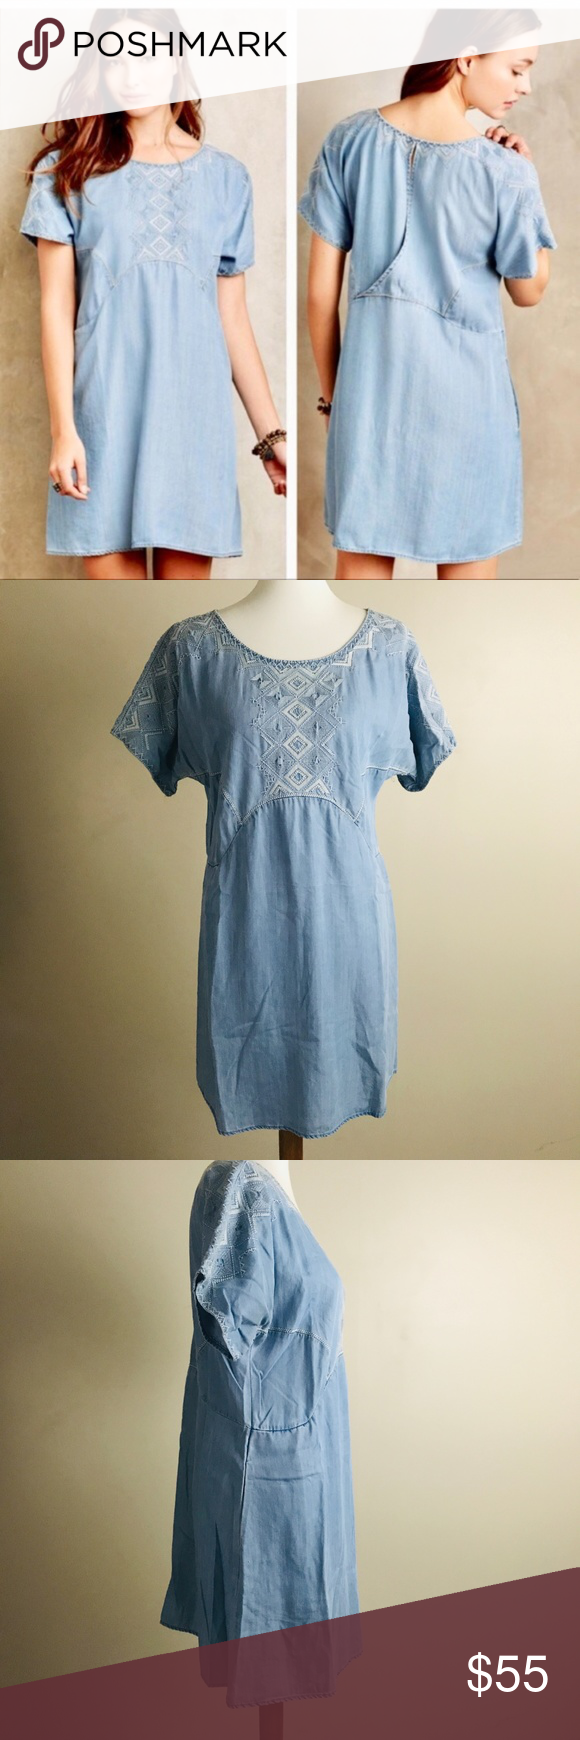 297cd21a2e0c Anthropologie Holding Horses M White Sands Dress Anthropologie Holding  Horses White Sands Dress Chambray Embroidered Tunic Mini Medium; Measures  approx 20